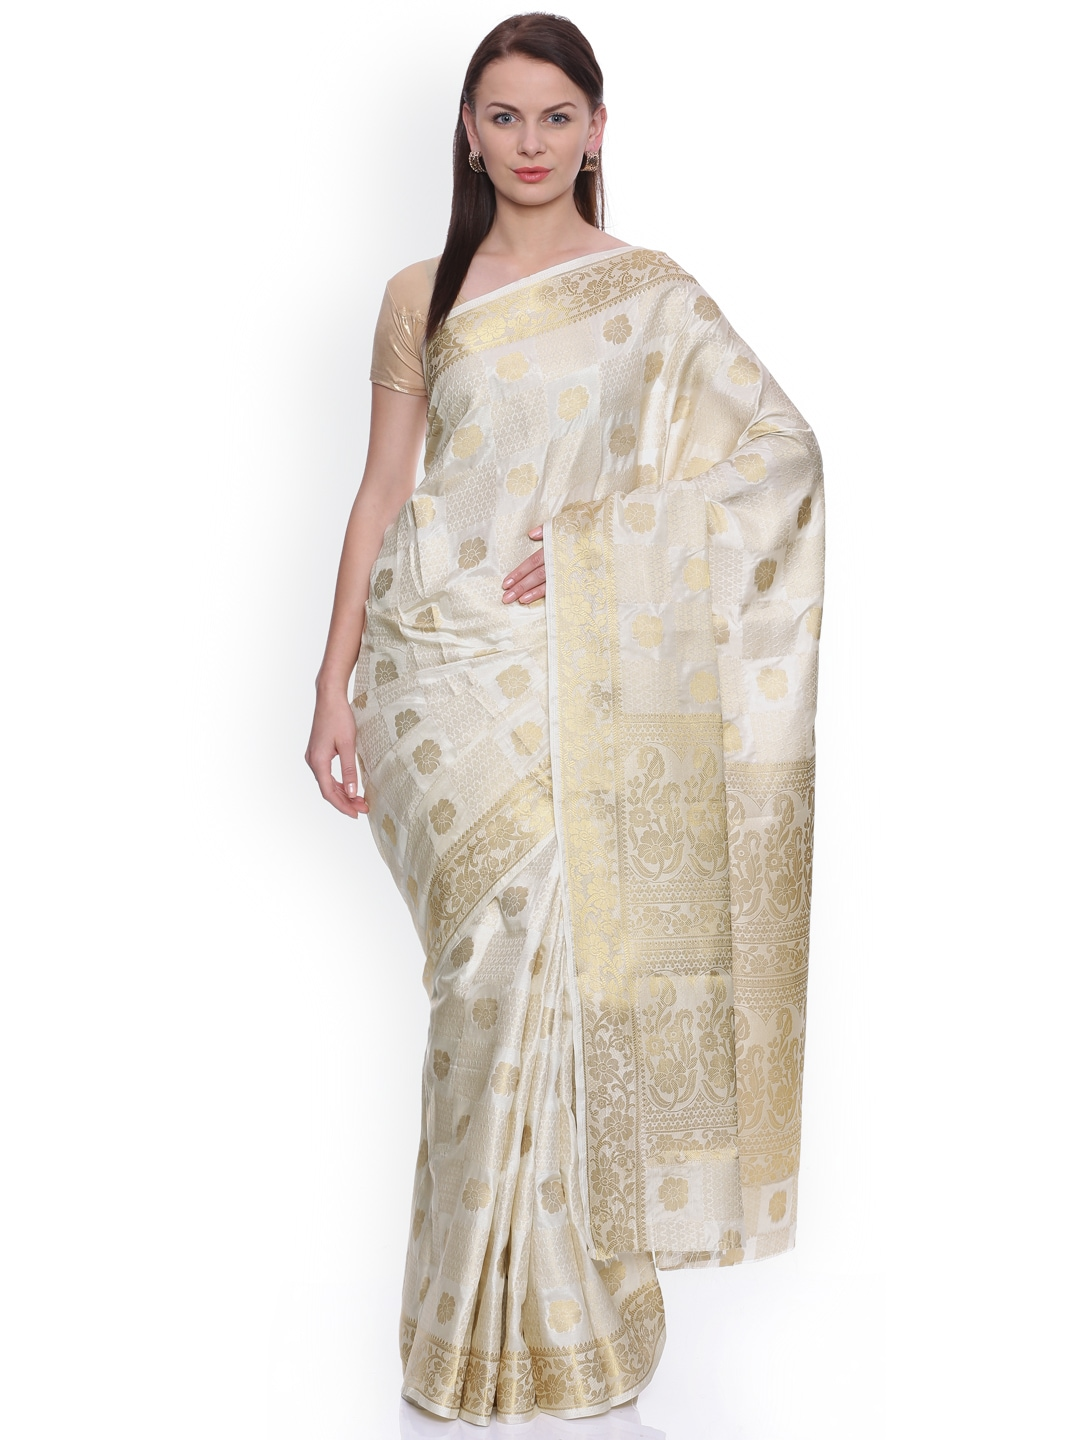 95a33503d58 Off White Saree - Buy Off White Sarees Online in India